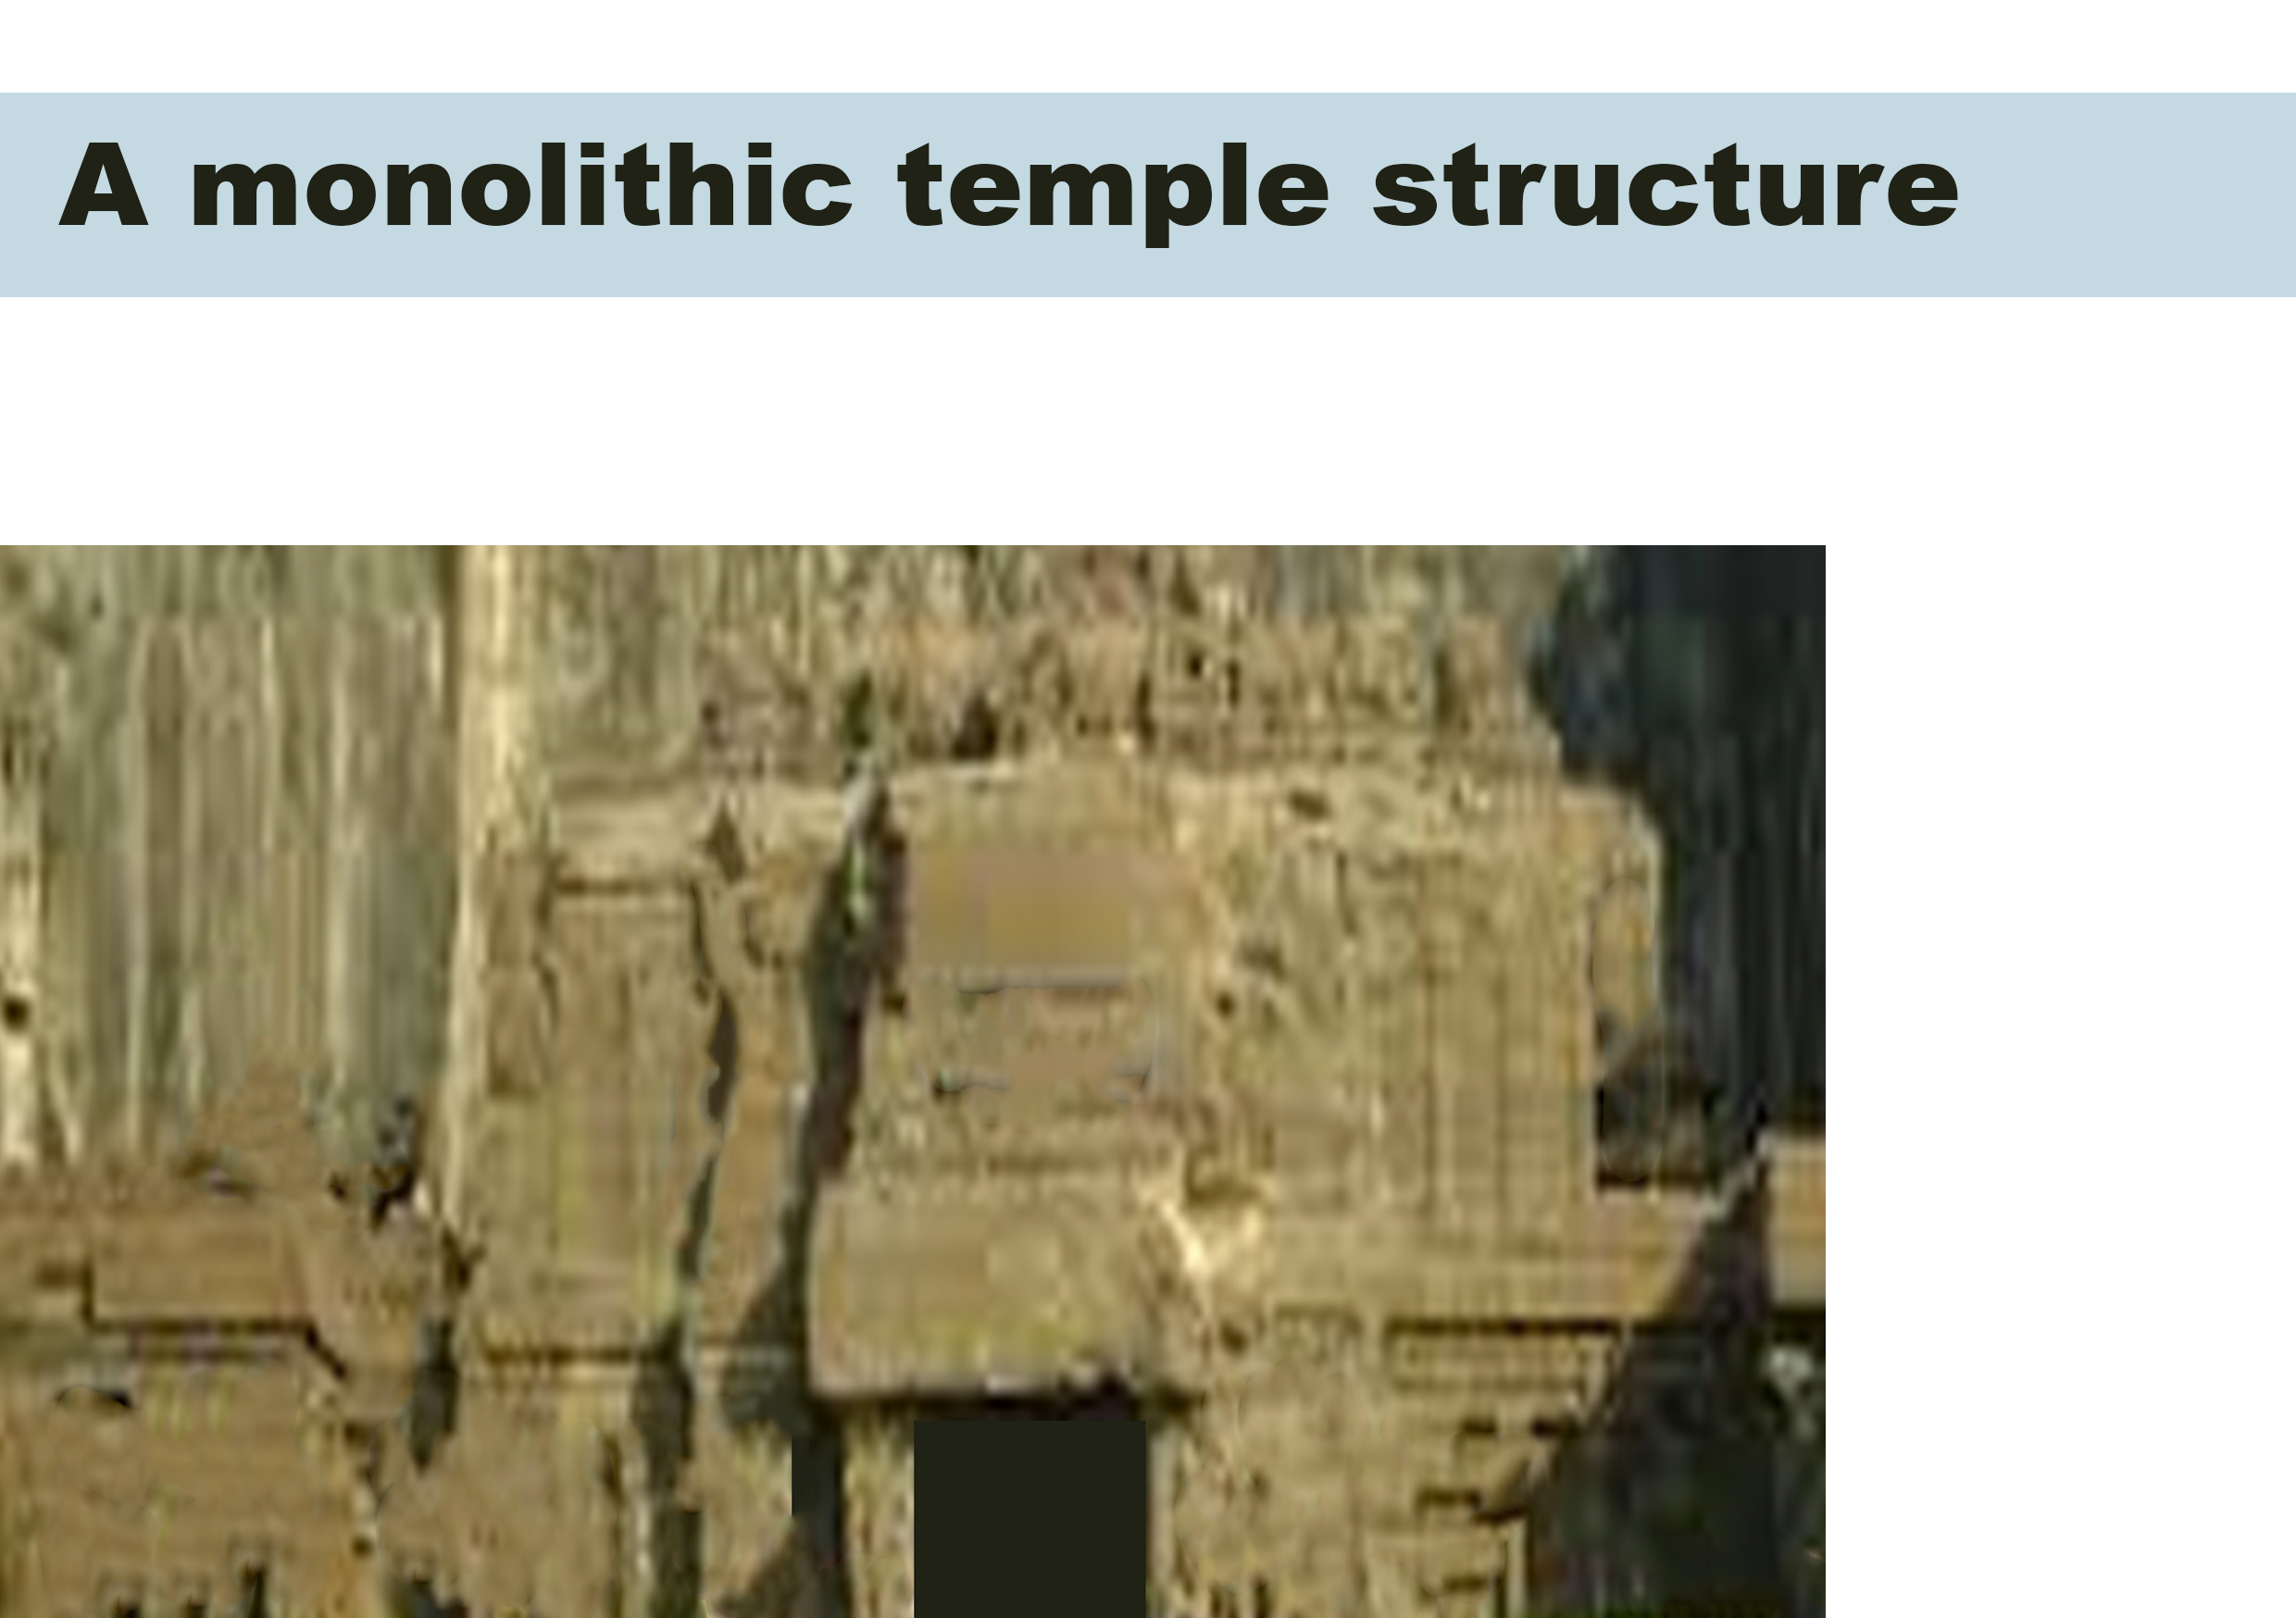 A monolithic temple structure